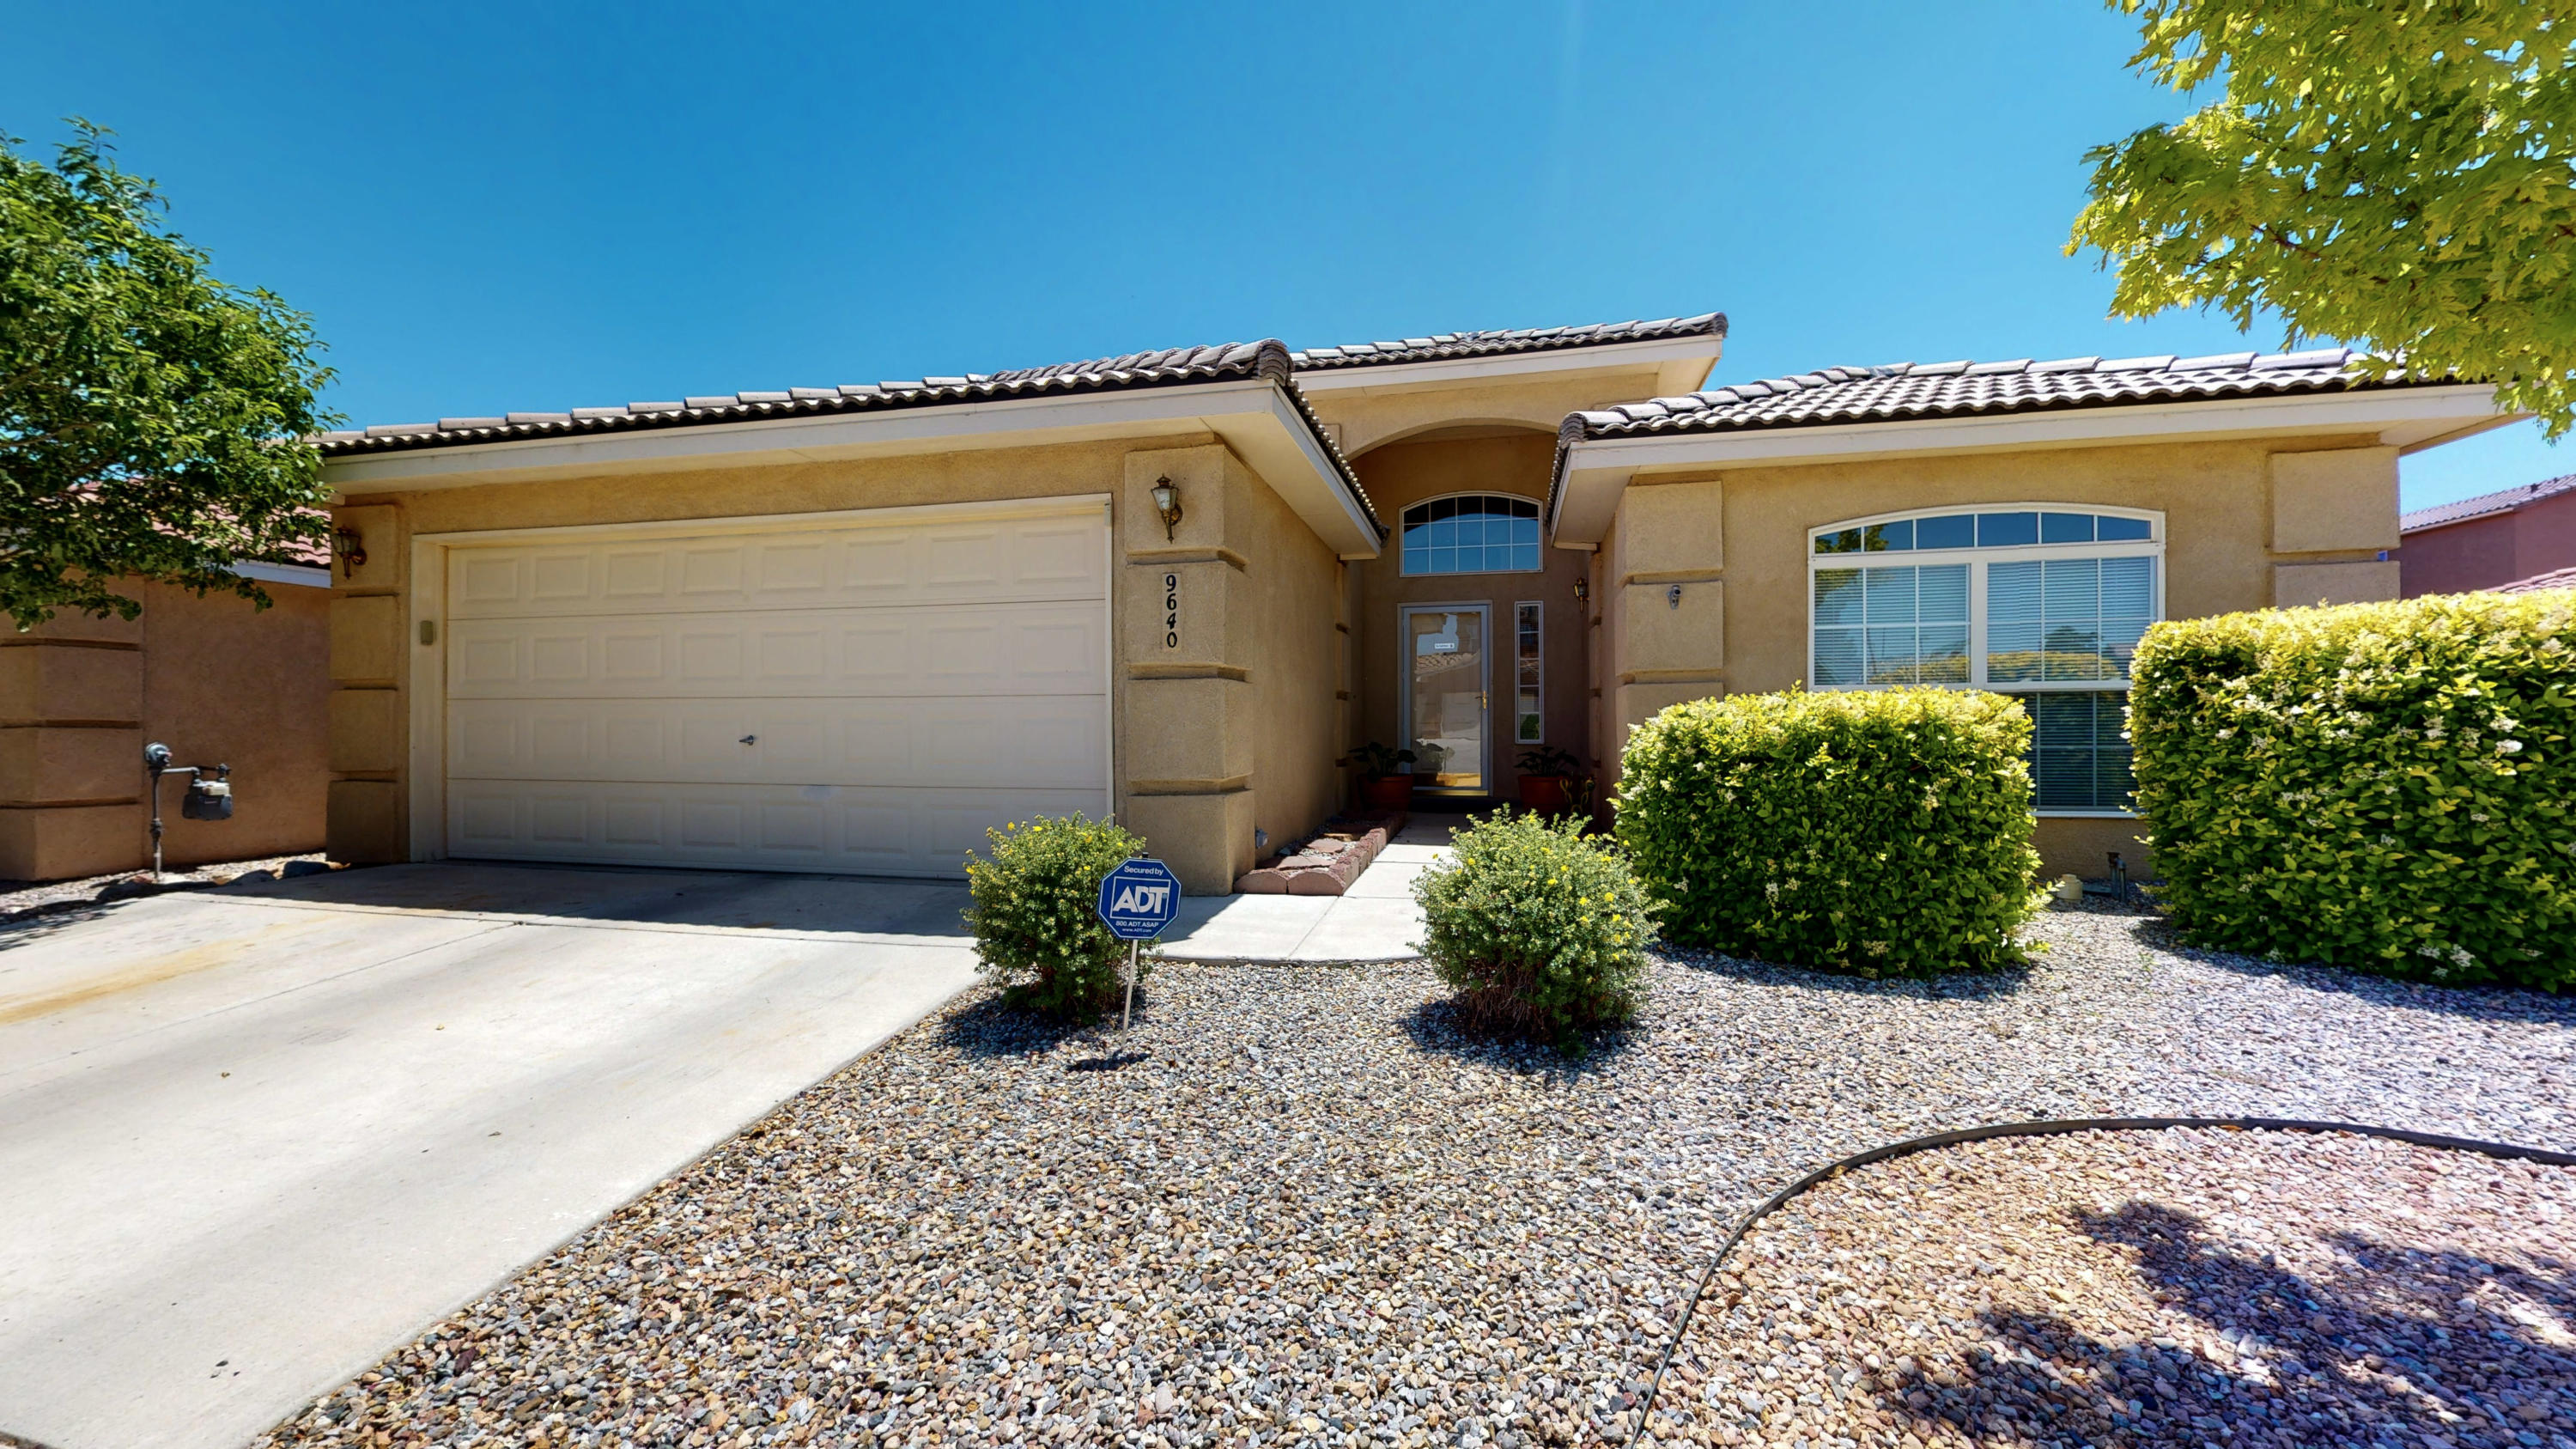 Immaculate move-in ready home!  Cozy up to the two-way gas fireplace while entertaining guests with the open floor plan. Your new home features cathedral ceilings throughout and Clerestory windows in the Living room, allowing lots of Natural Light. The private master suite is separate from all the other rooms. The master suite features a large walk-in closet and large garden tub for soaking after a long day. There is also a study that can easily be a 4th bedroom.  The backyard is low maintenance and ready for you to move in!  Close to Freeway access! Schedule a private showing or take a virtual walkthrough tour today!